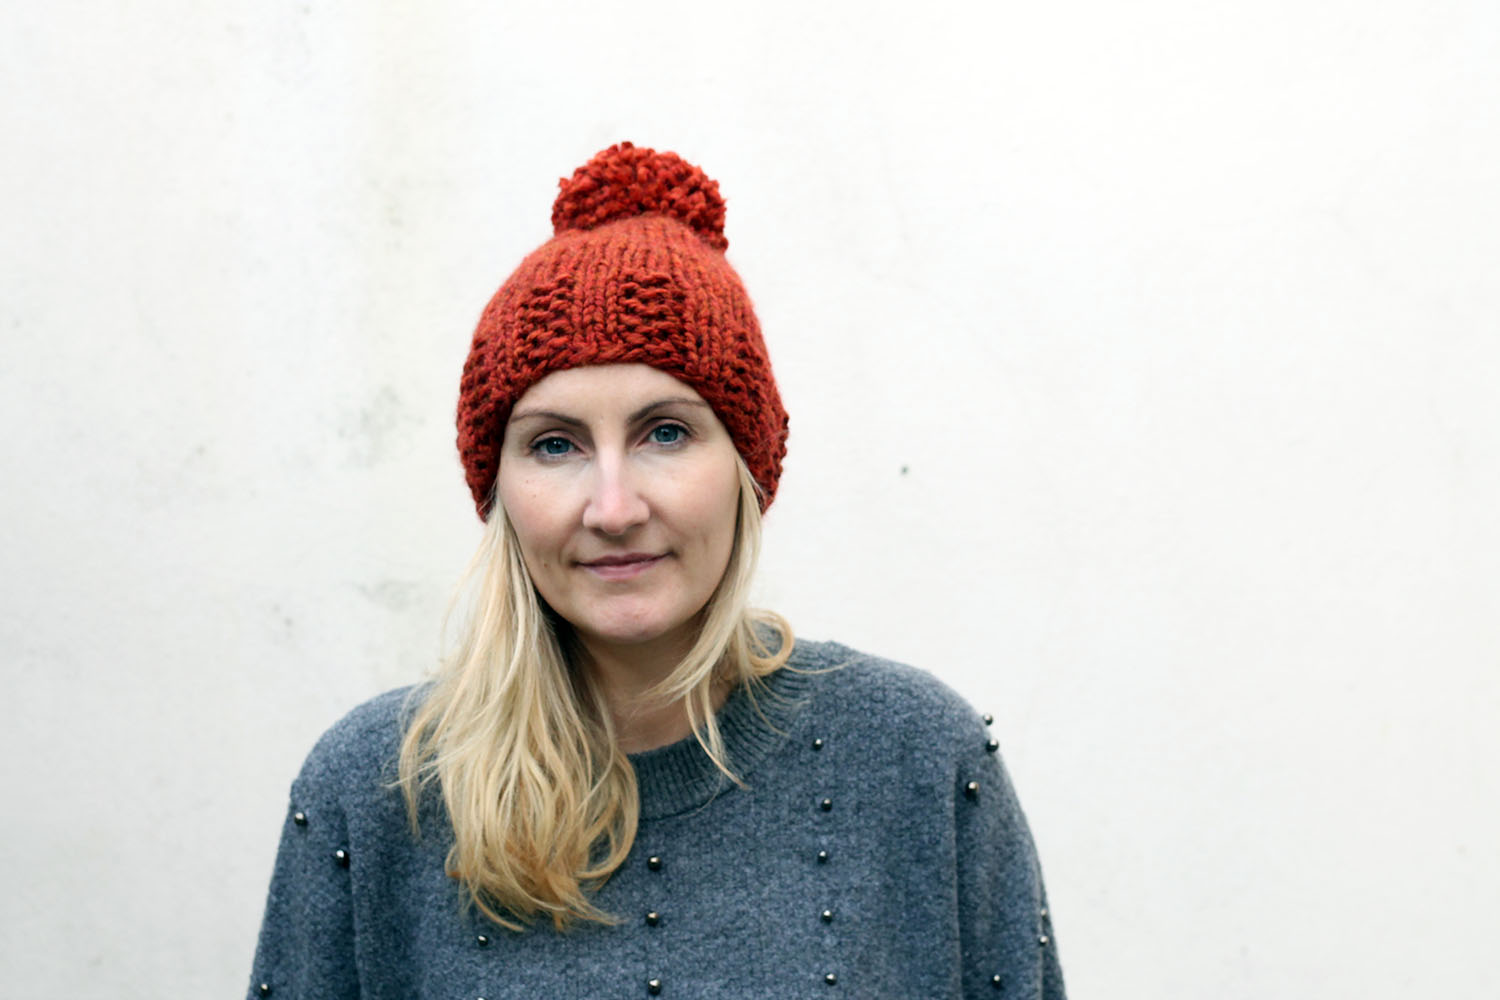 New Hat Knitting Patterns for The New Year! | Free Knitting Patterns ...